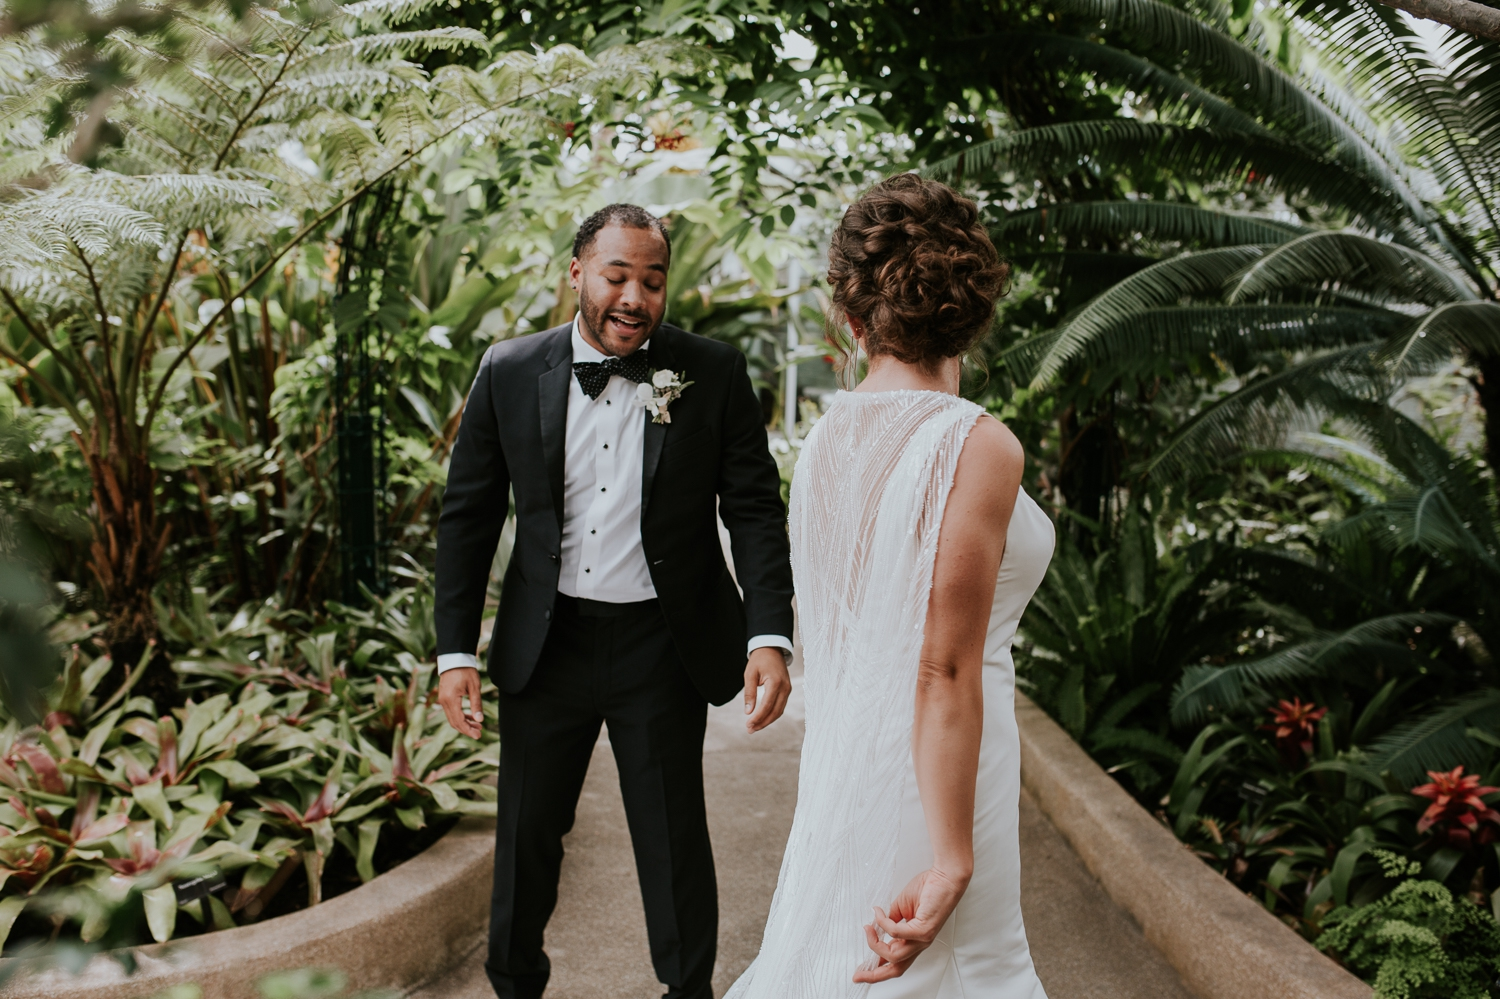 baltimore-maryland-rawlings-conservatory-wedding-portaits-photography 27.jpg